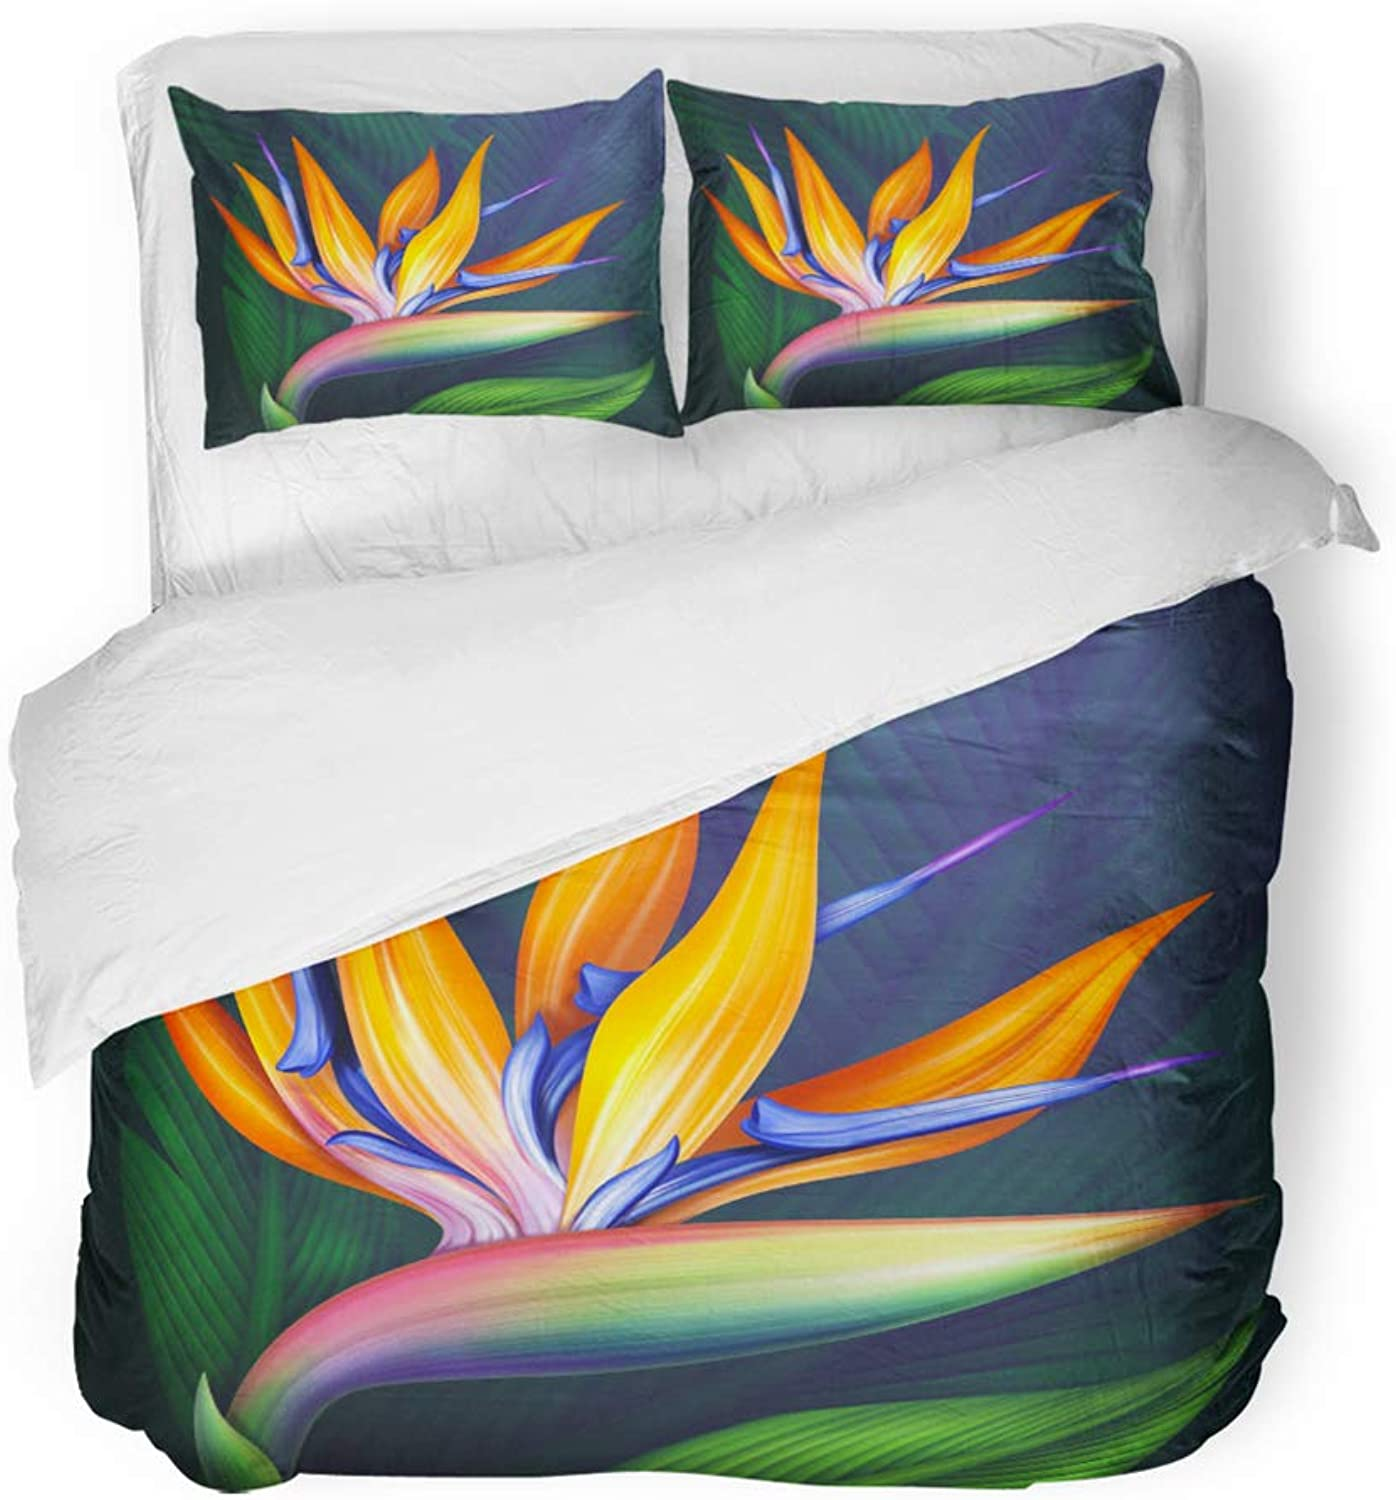 Emvency Decor Duvet Cover Set King Size colorful Hawaiian Strelitzia Bird of Paradise Exotic Flower Botanical Green 3 Piece Brushed Microfiber Fabric Print Bedding Set Cover